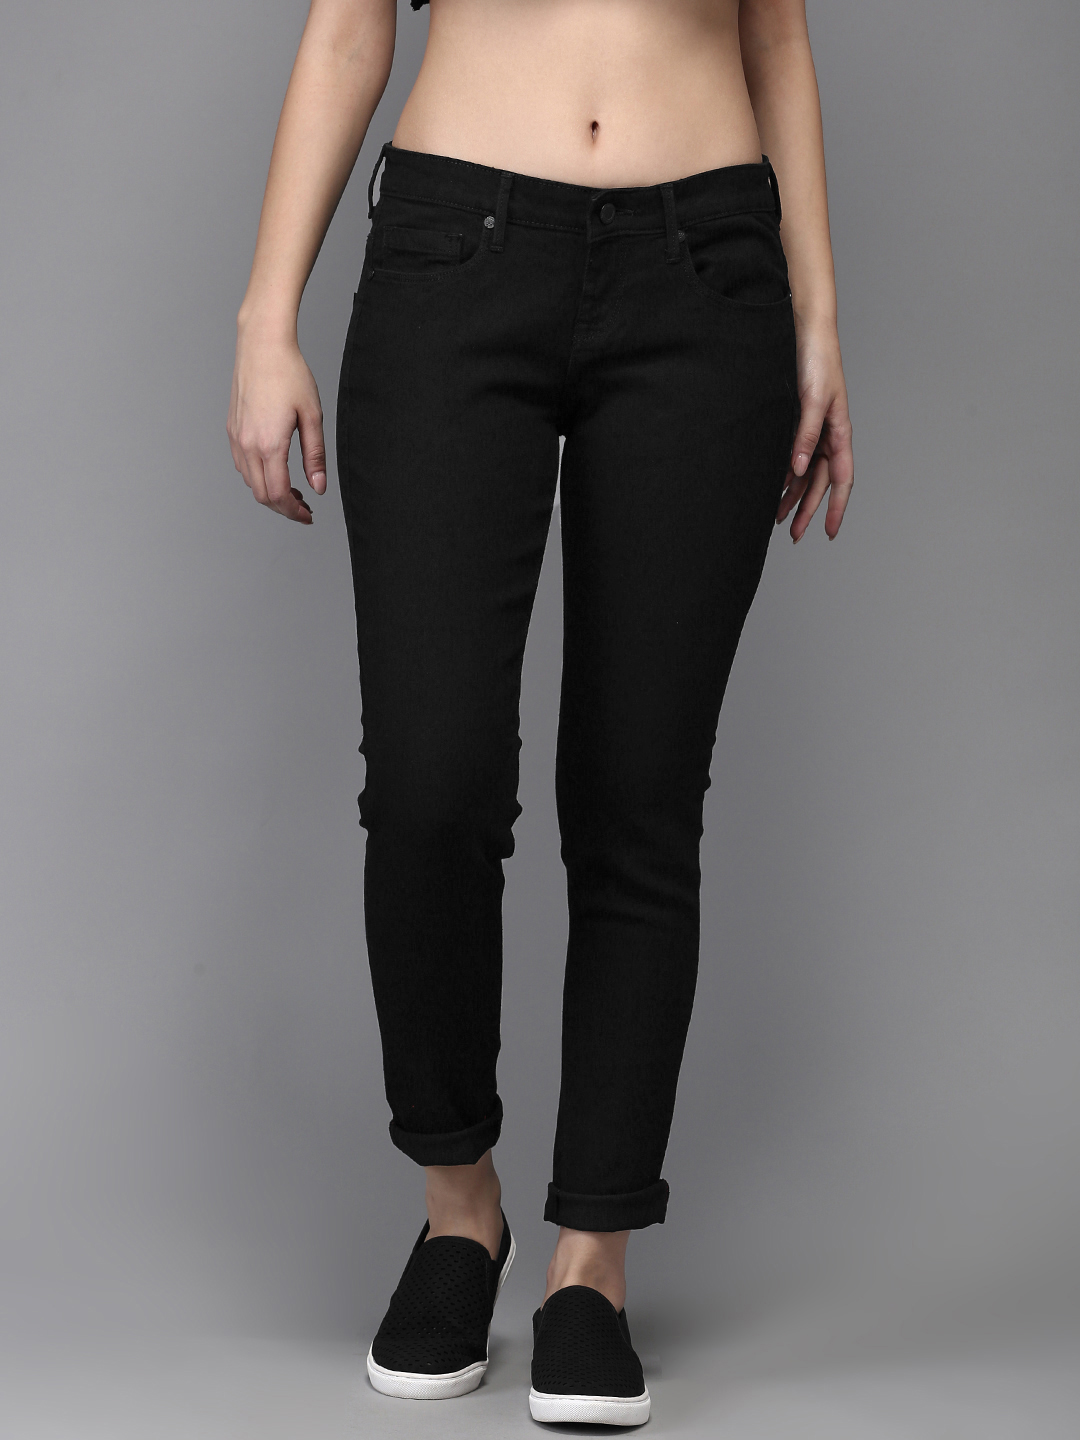 Moda Rapido Women Black Skinny Fit Mid-Rise Clean Look Stretchable Jeans Price in India